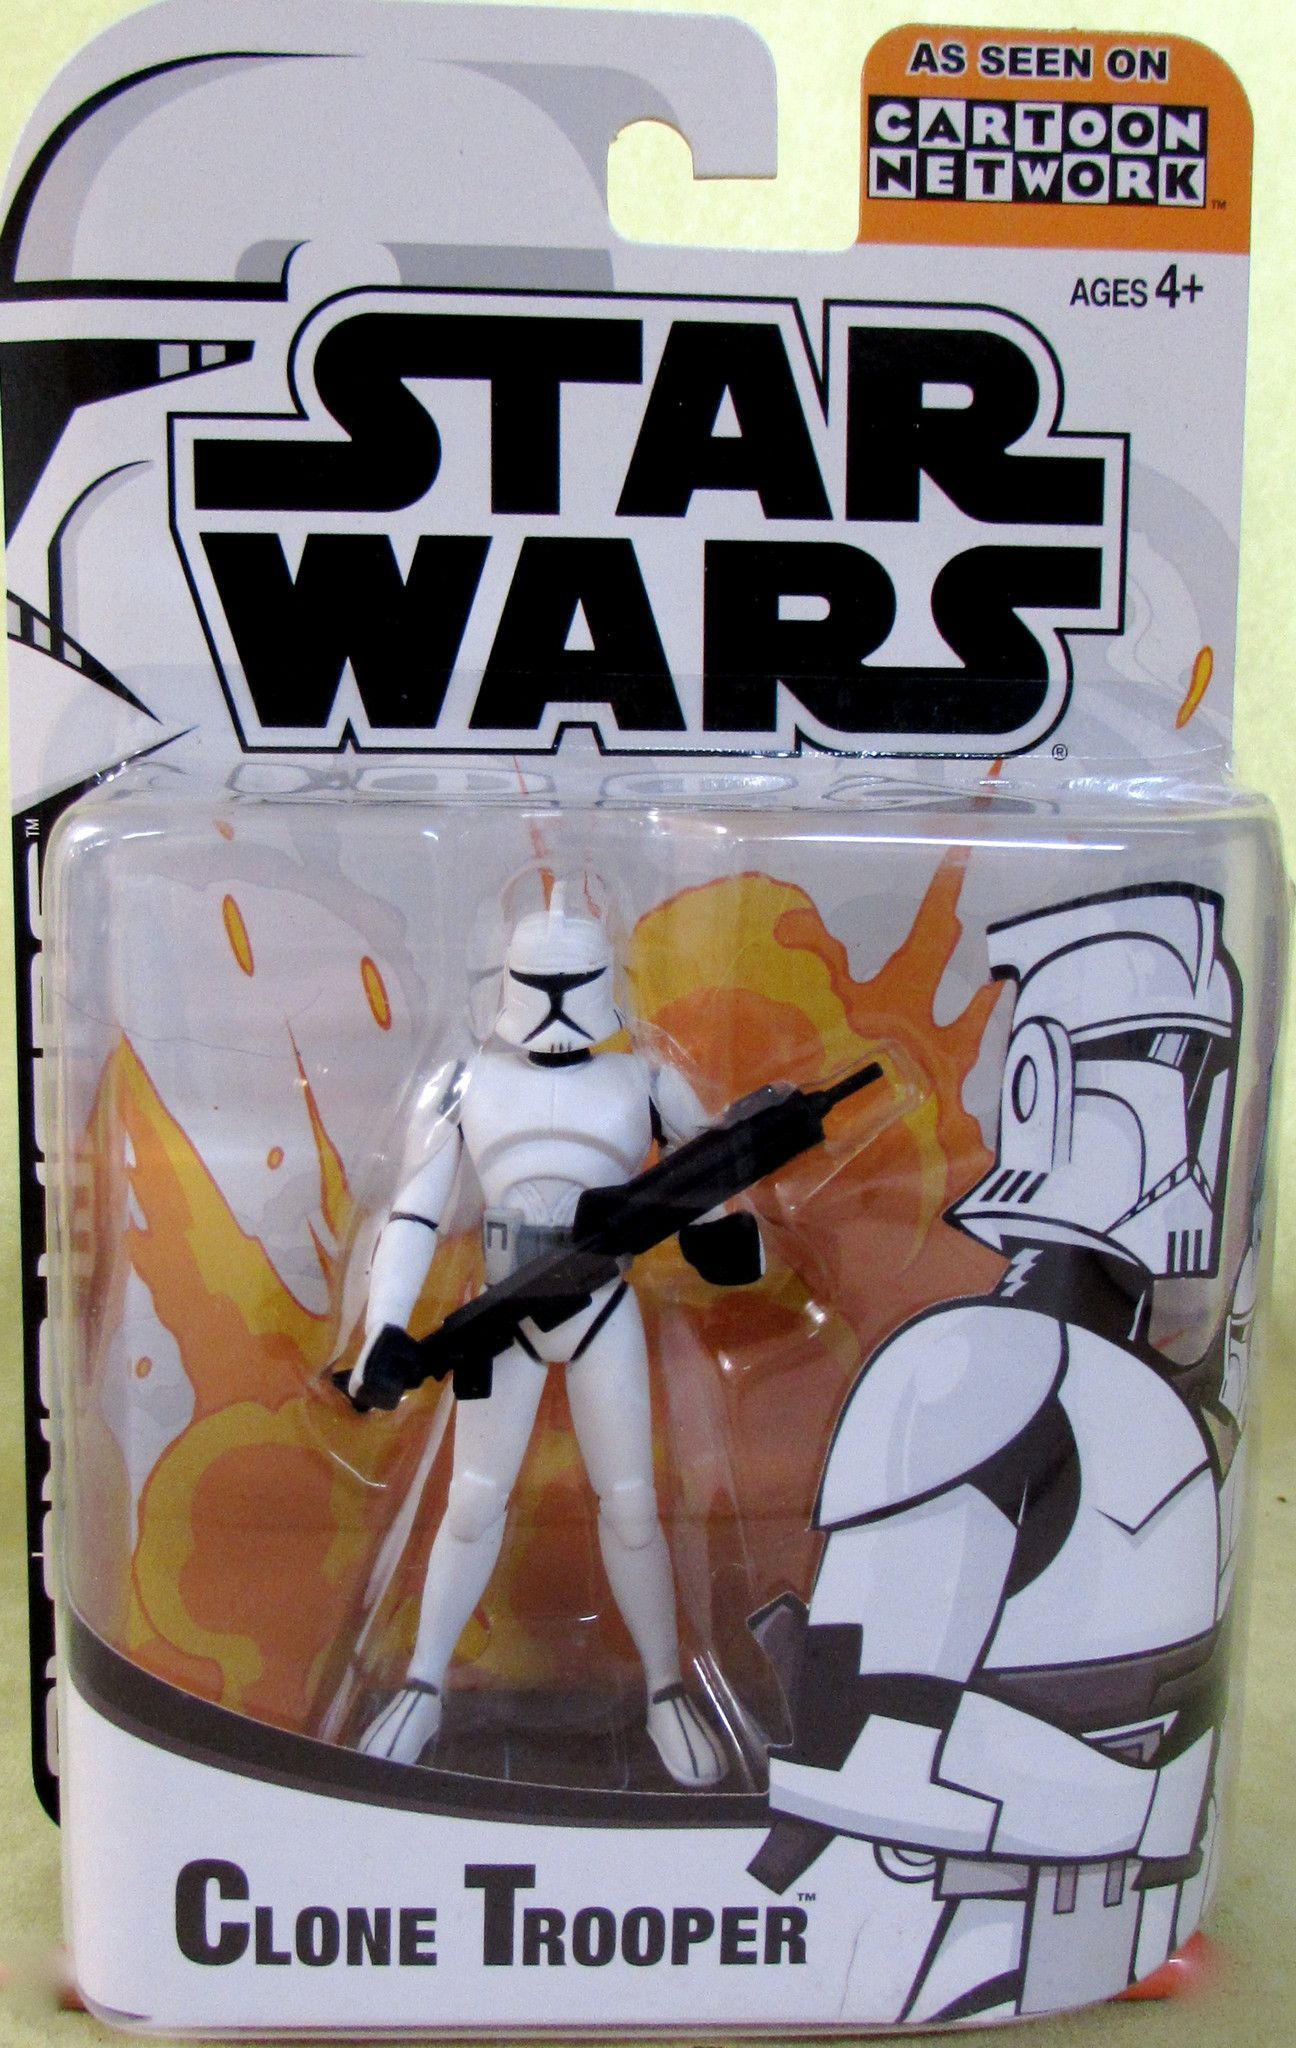 Starwars Clone Wars Clone Trooper Cartoon Network Star Wars Toys Star Wars Figures Clone Trooper